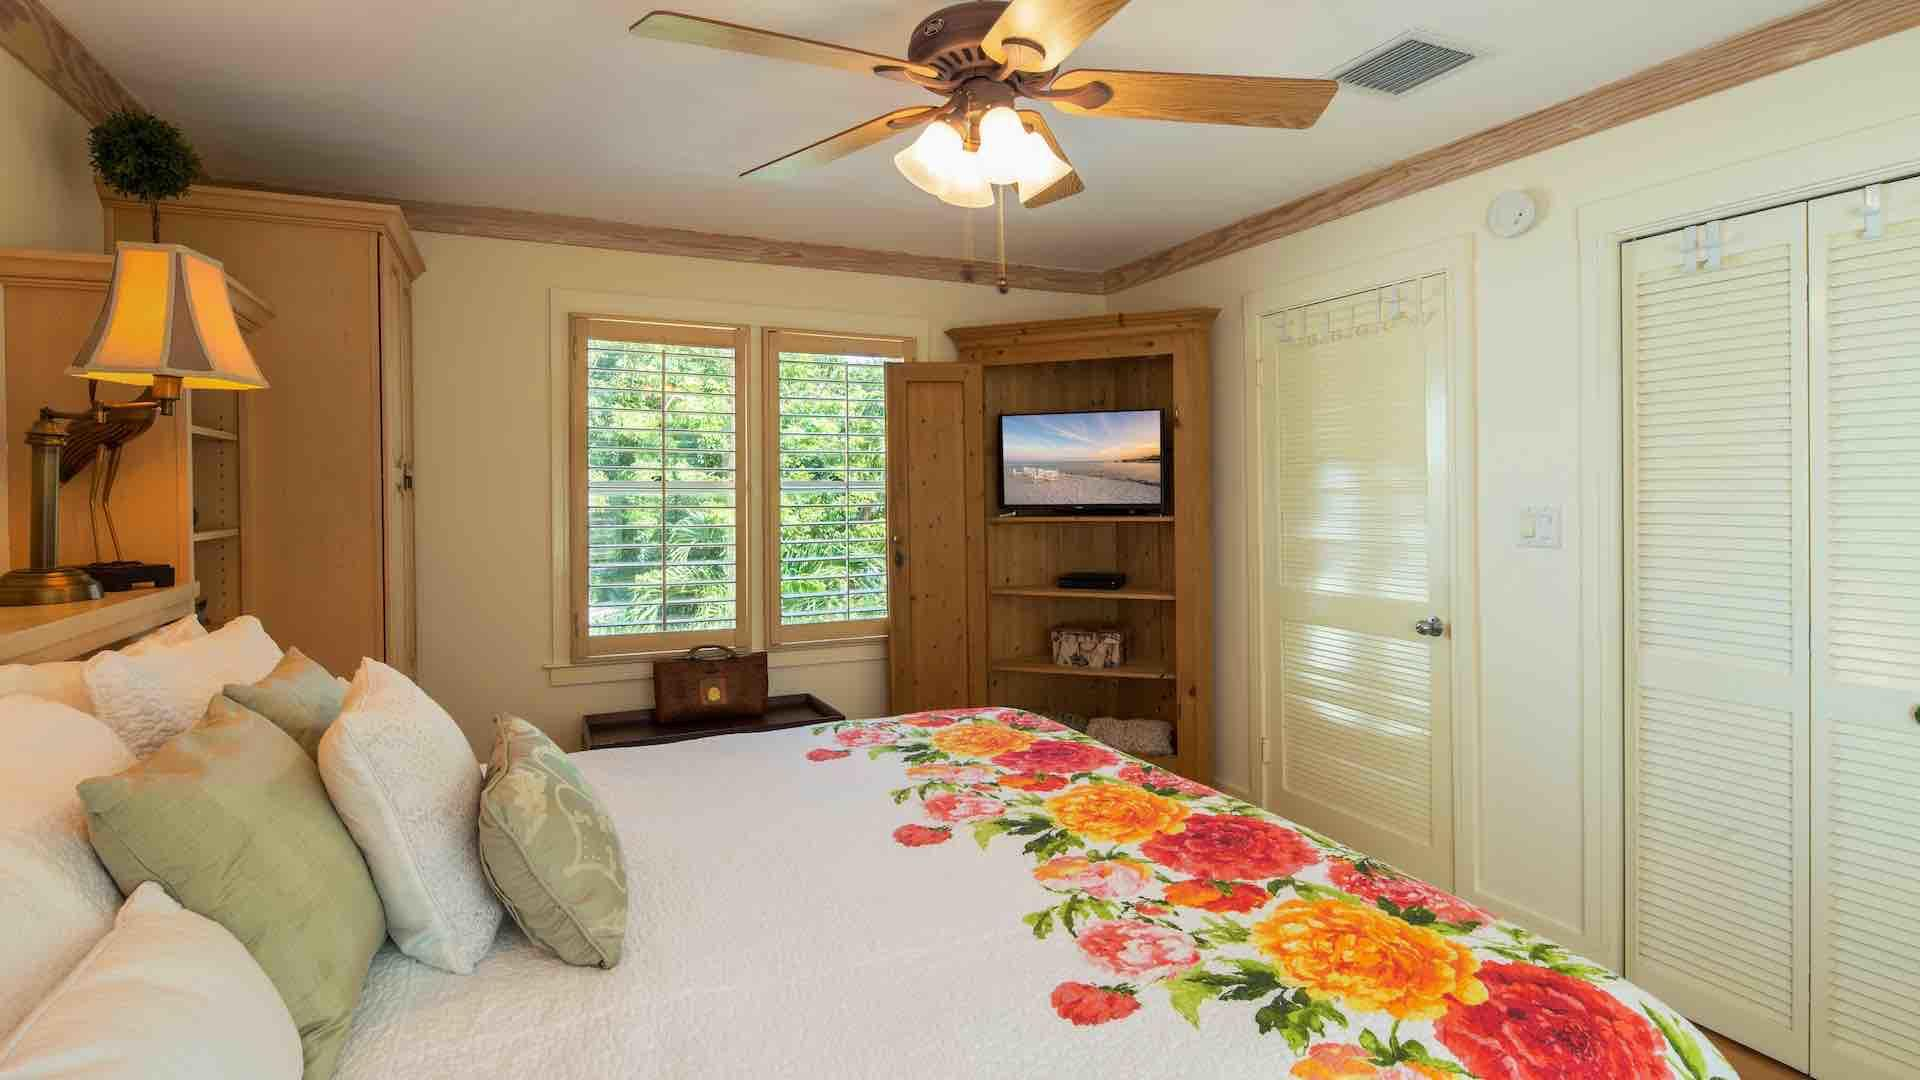 The master bedroom has an overhead fan and flat screen TV...